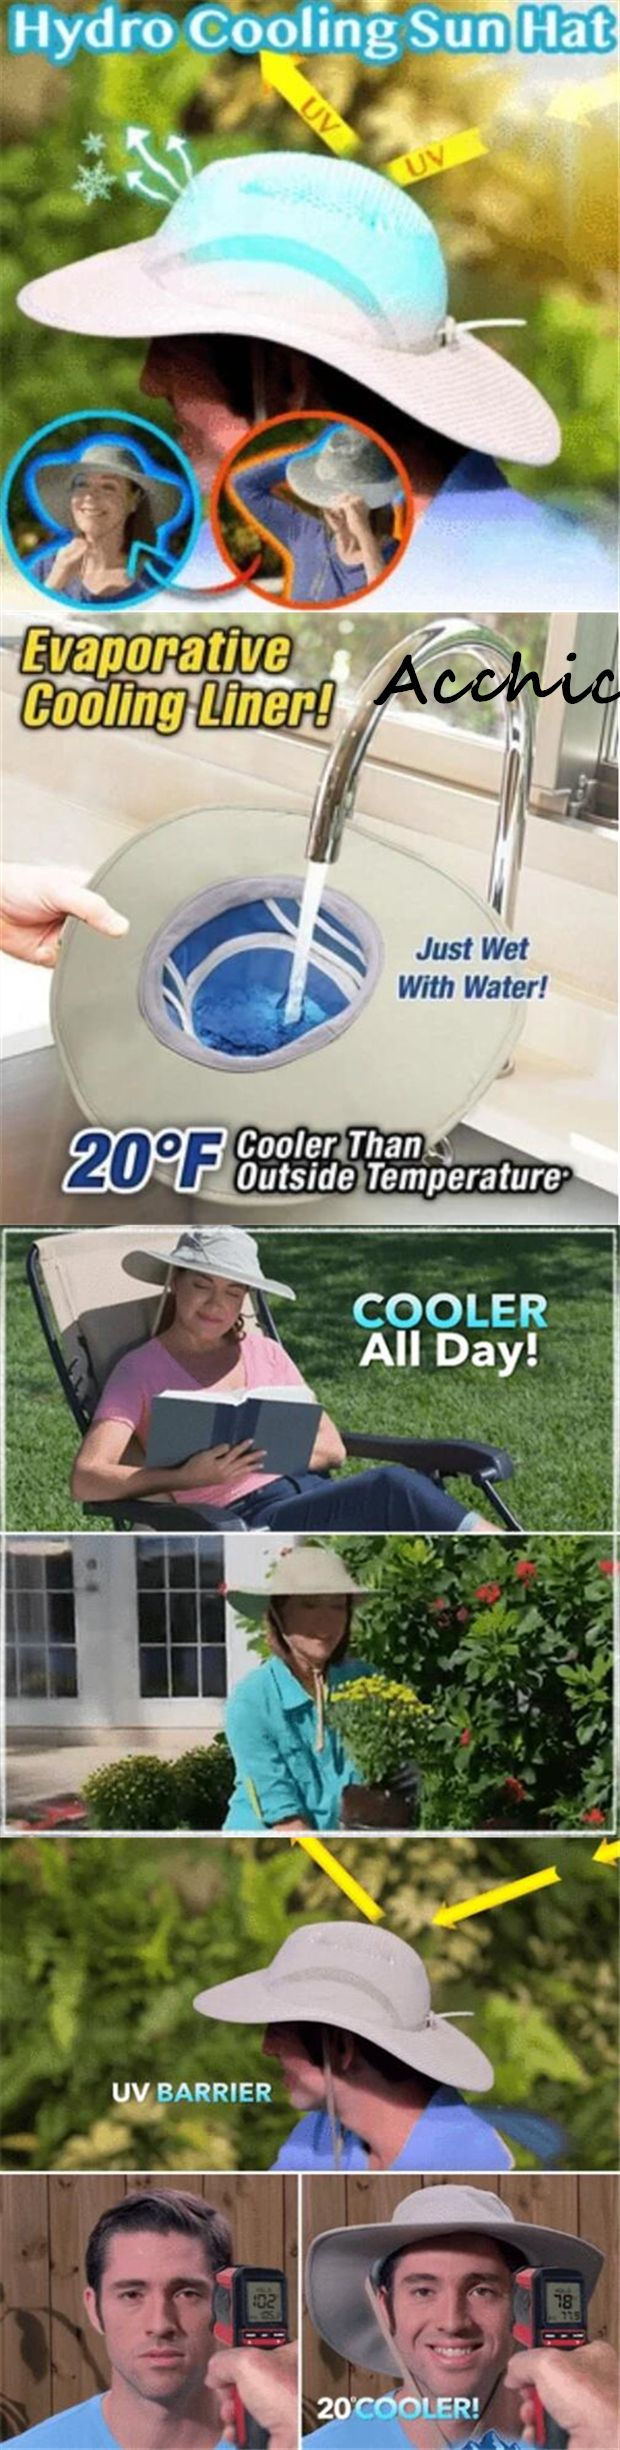 Hydro Cooling Sun Hat Is The New Hat That Combines Controlled